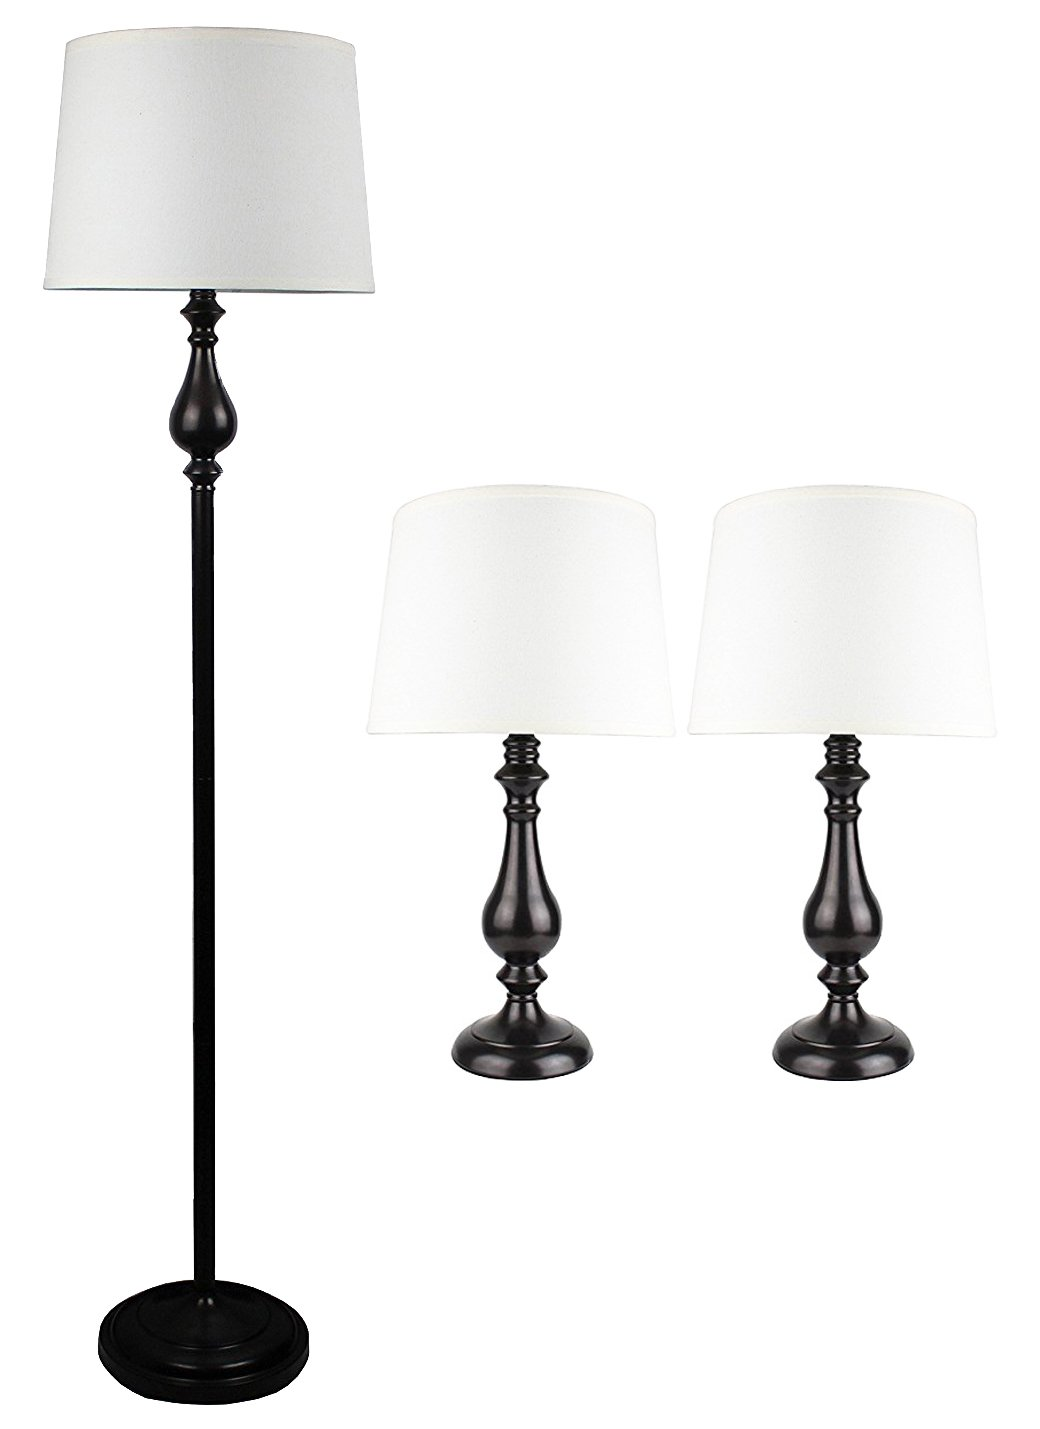 Urbanest McKinley 3-piece Table and Floor Lamp Set in Oil-rubbed Bronze with Natural Linen Shade